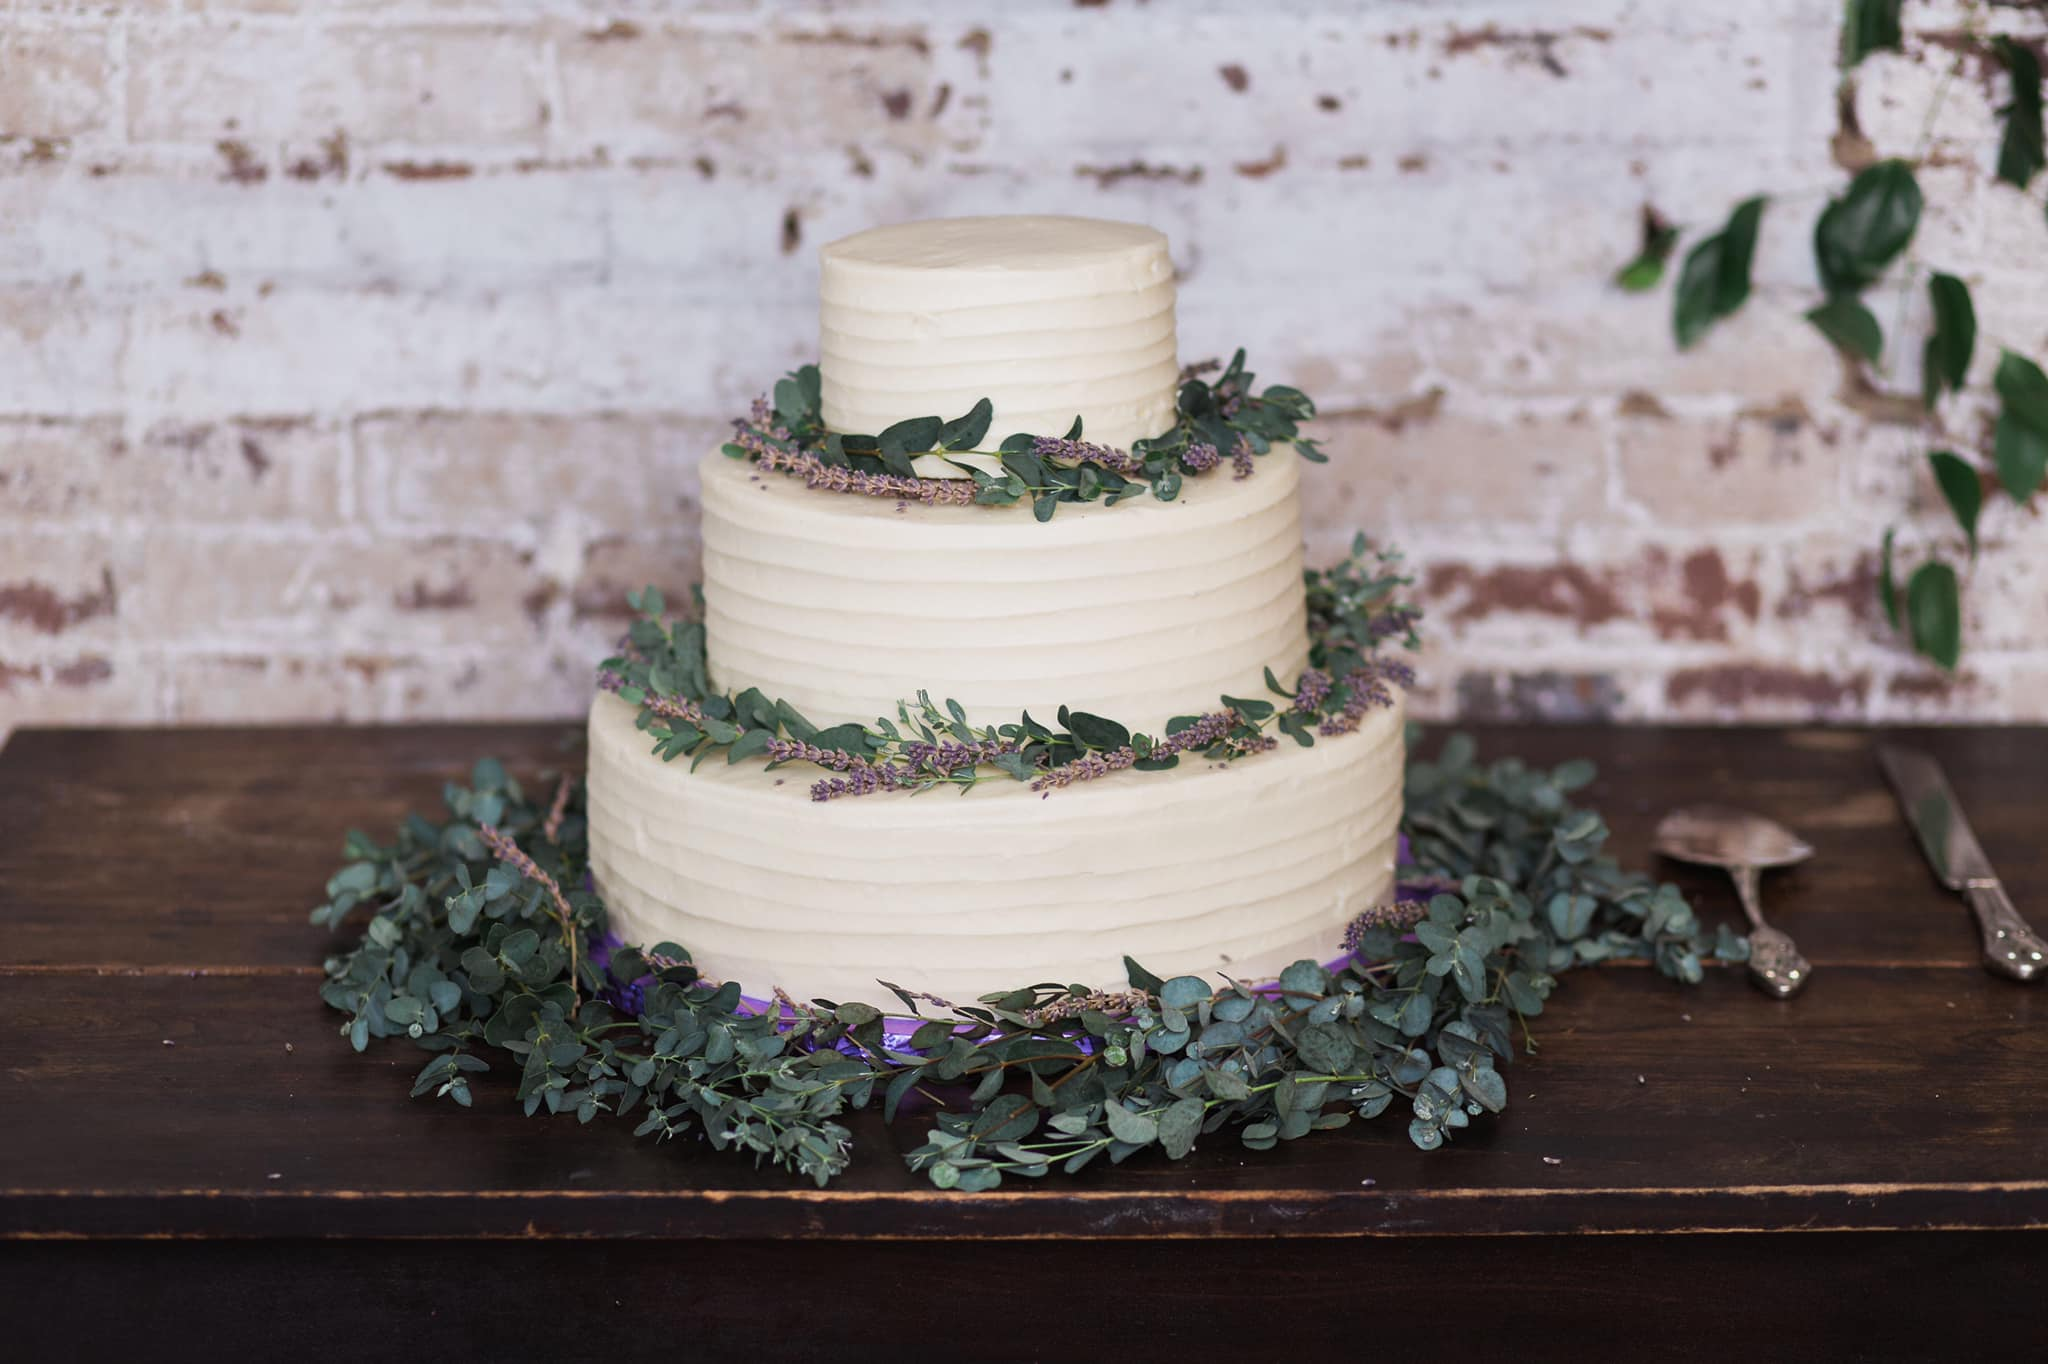 Cake with Lavender and Greenery and Horizontal Lines.jpg